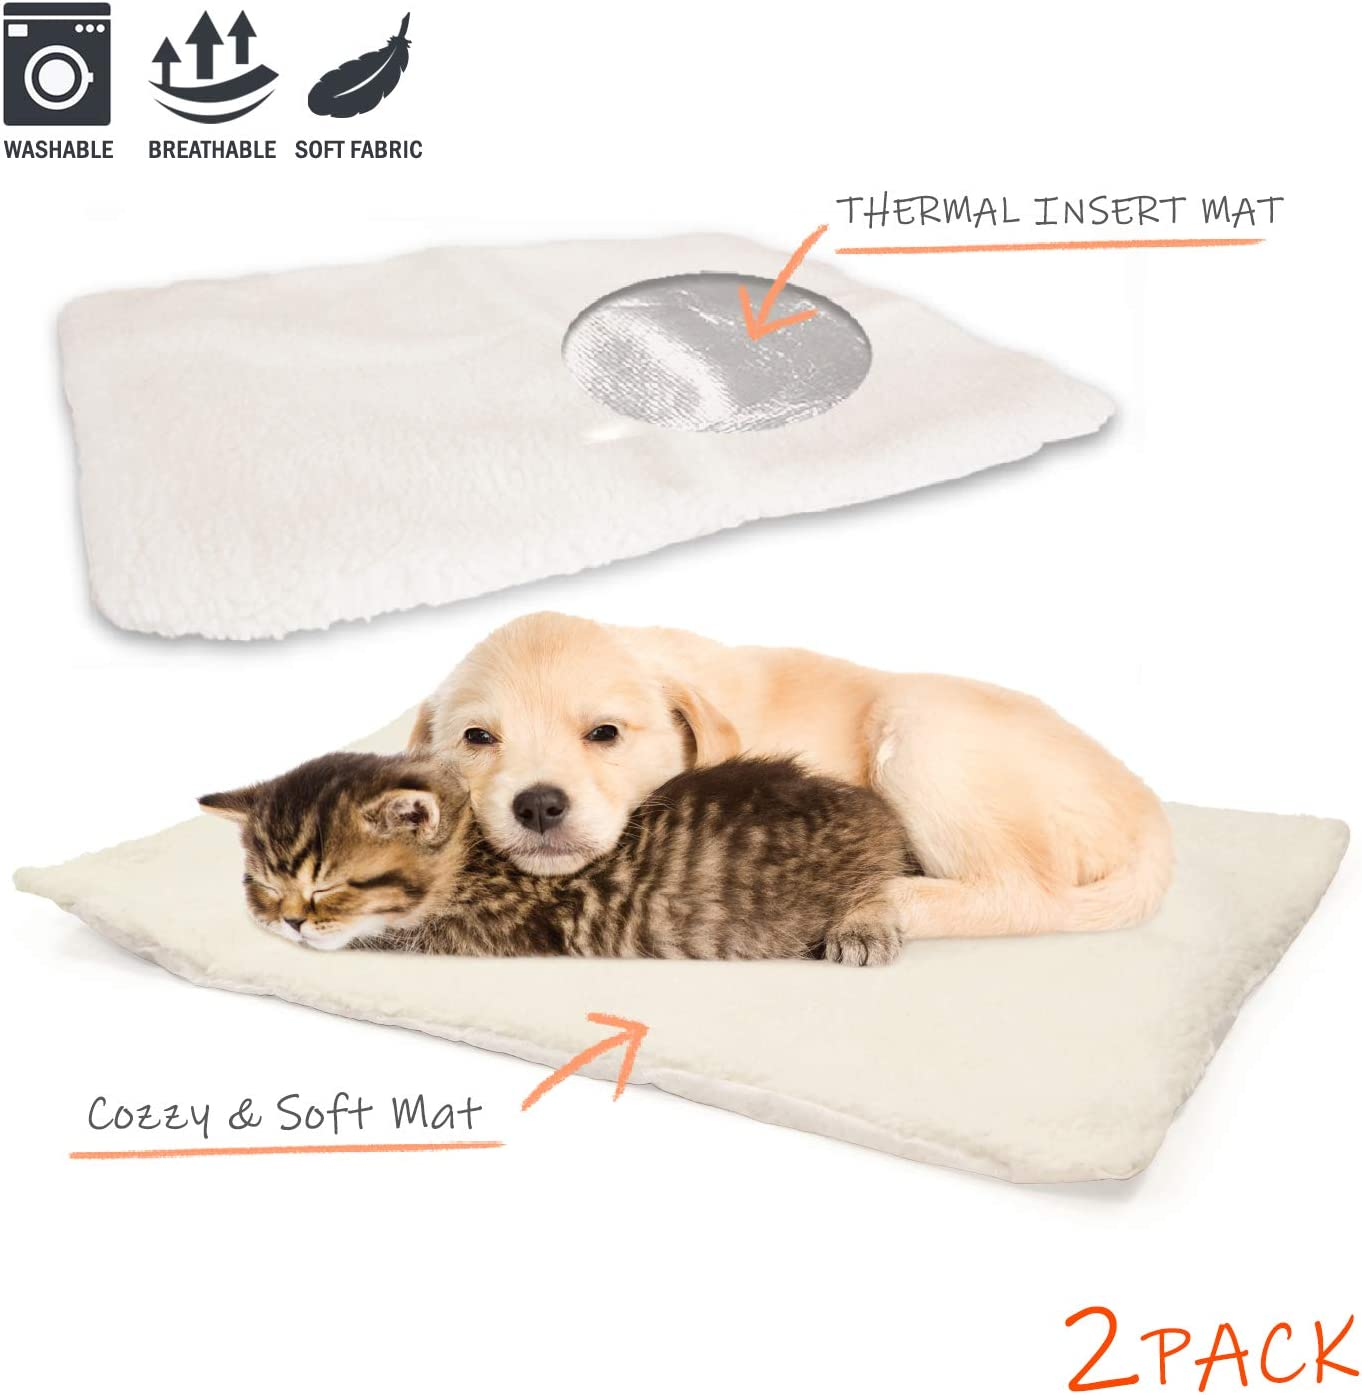 PARTYSAVING PET Bed 1PACK or 2PACK Self Heating Snooze Pad Pet Bed Mat for Pets Cats Dogs and Kittens for Travel or Home, White, Medium, APL1344, APL2255